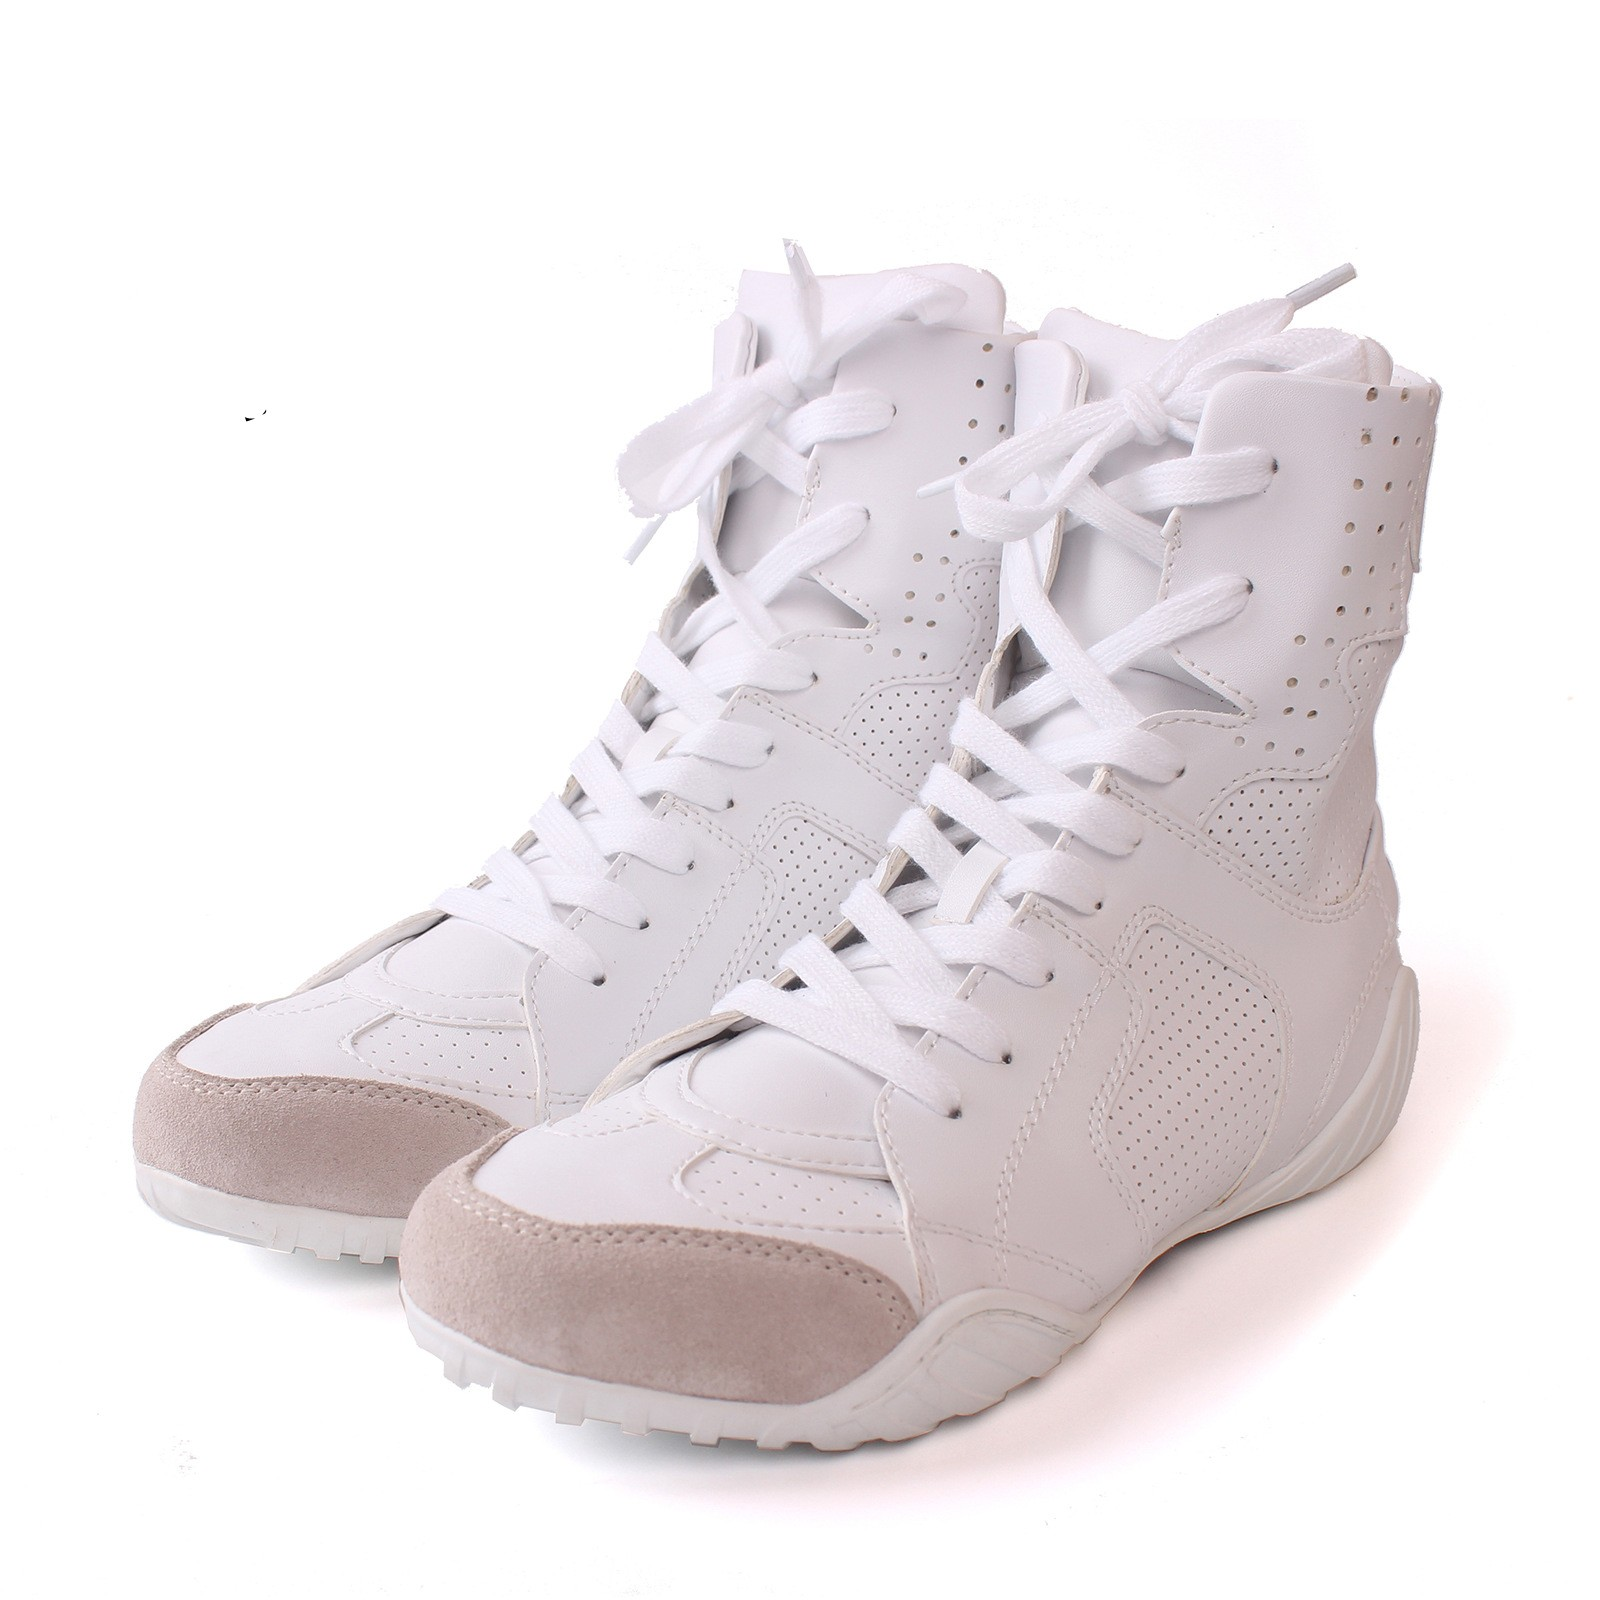 Fashion Sexy Style White Flats Heels Women's Boot Genuine Leather Lace Up Mid-Calf Boots Woman Cross Strap Boot Shoes CN-A0003 double buckle cross straps mid calf boots